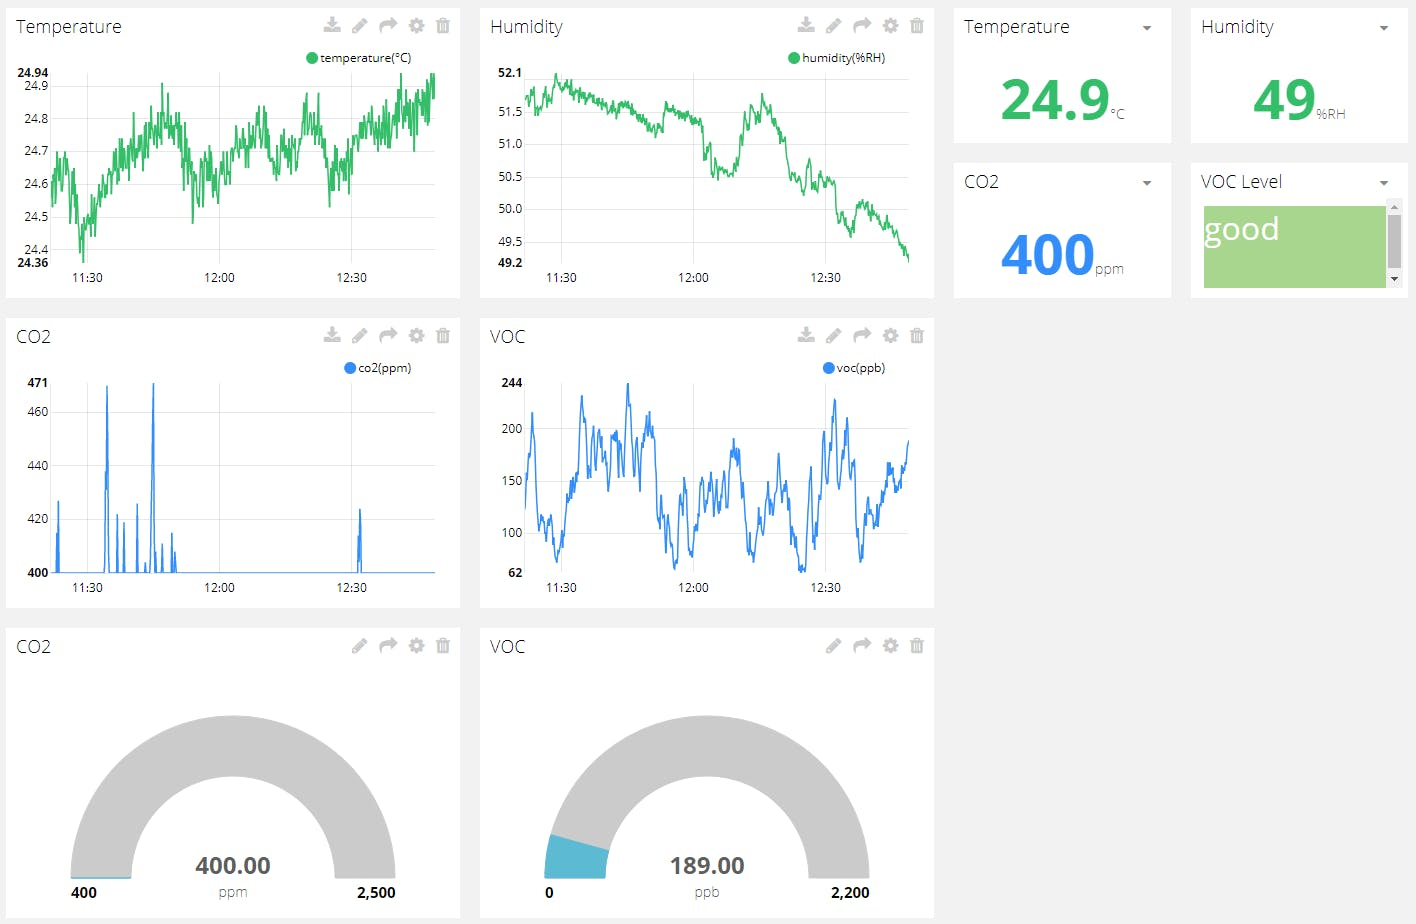 Dashboard to monitor indoor air quality